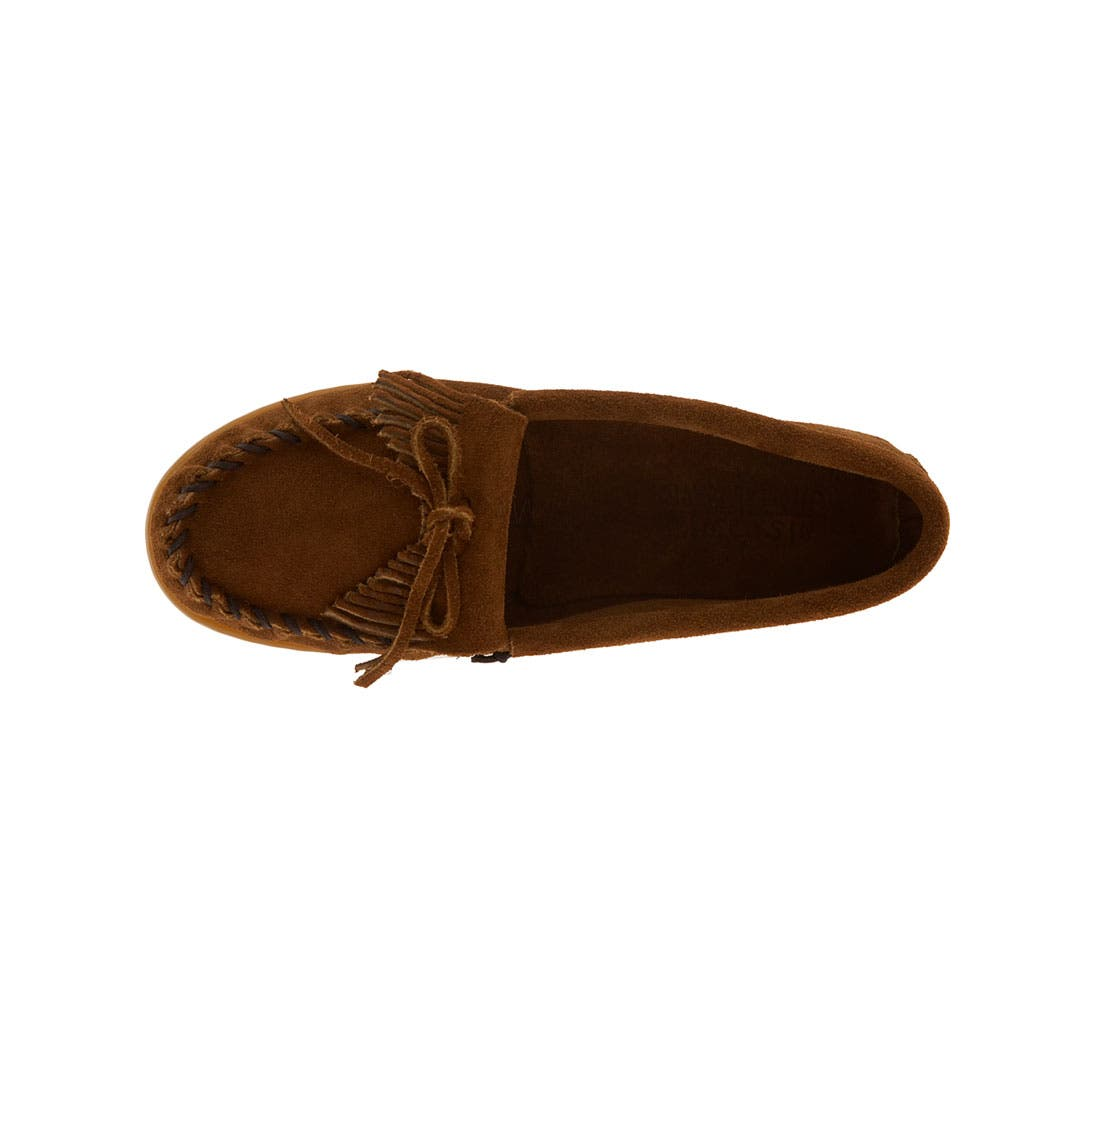 Alternate Image 3  - Minnetonka Kiltie Moccasin (Walker, Toddler, Little Kid & Big Kid)